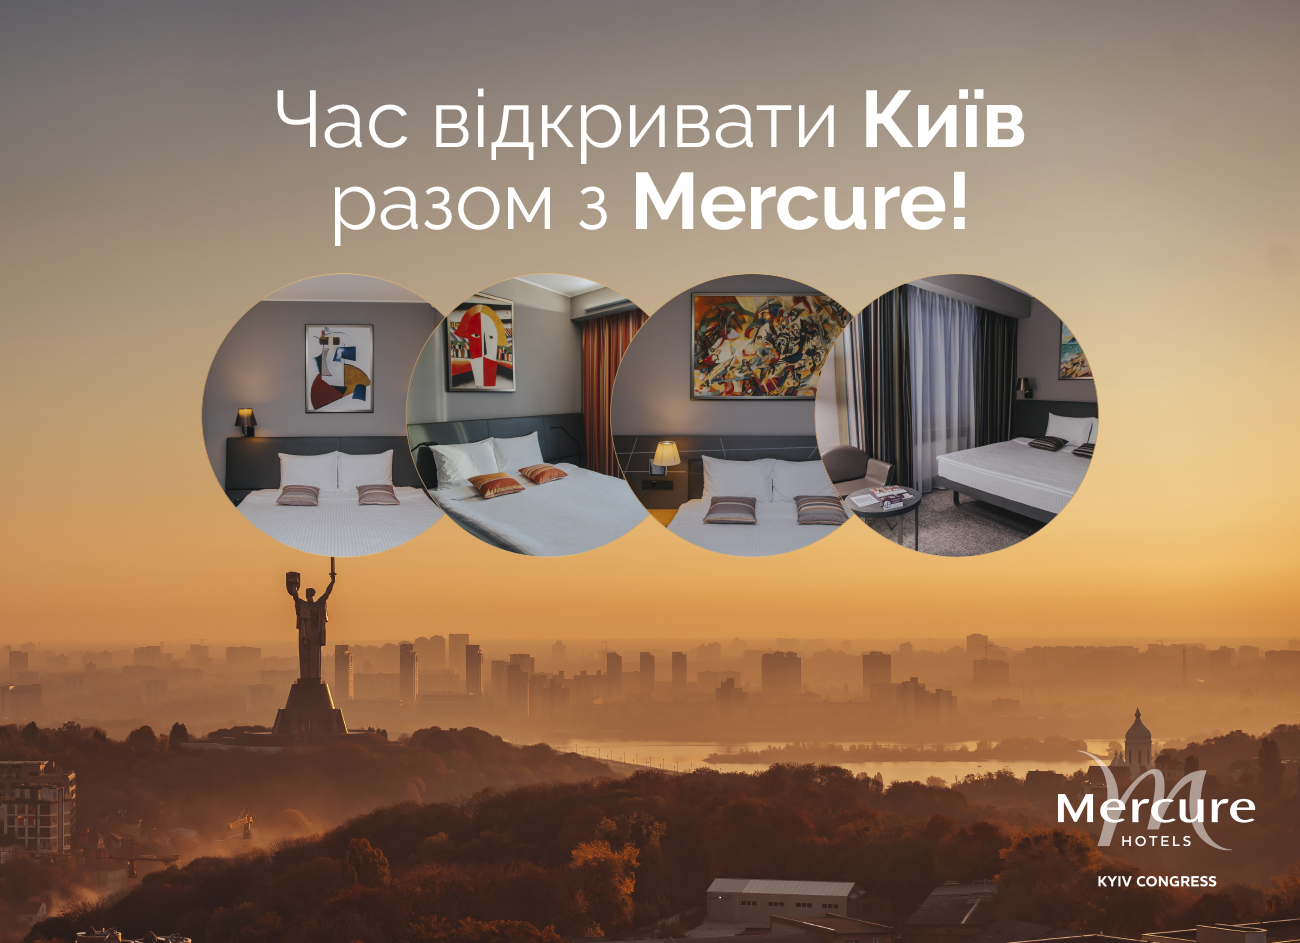 It's time to discover Kyiv with Mercure!